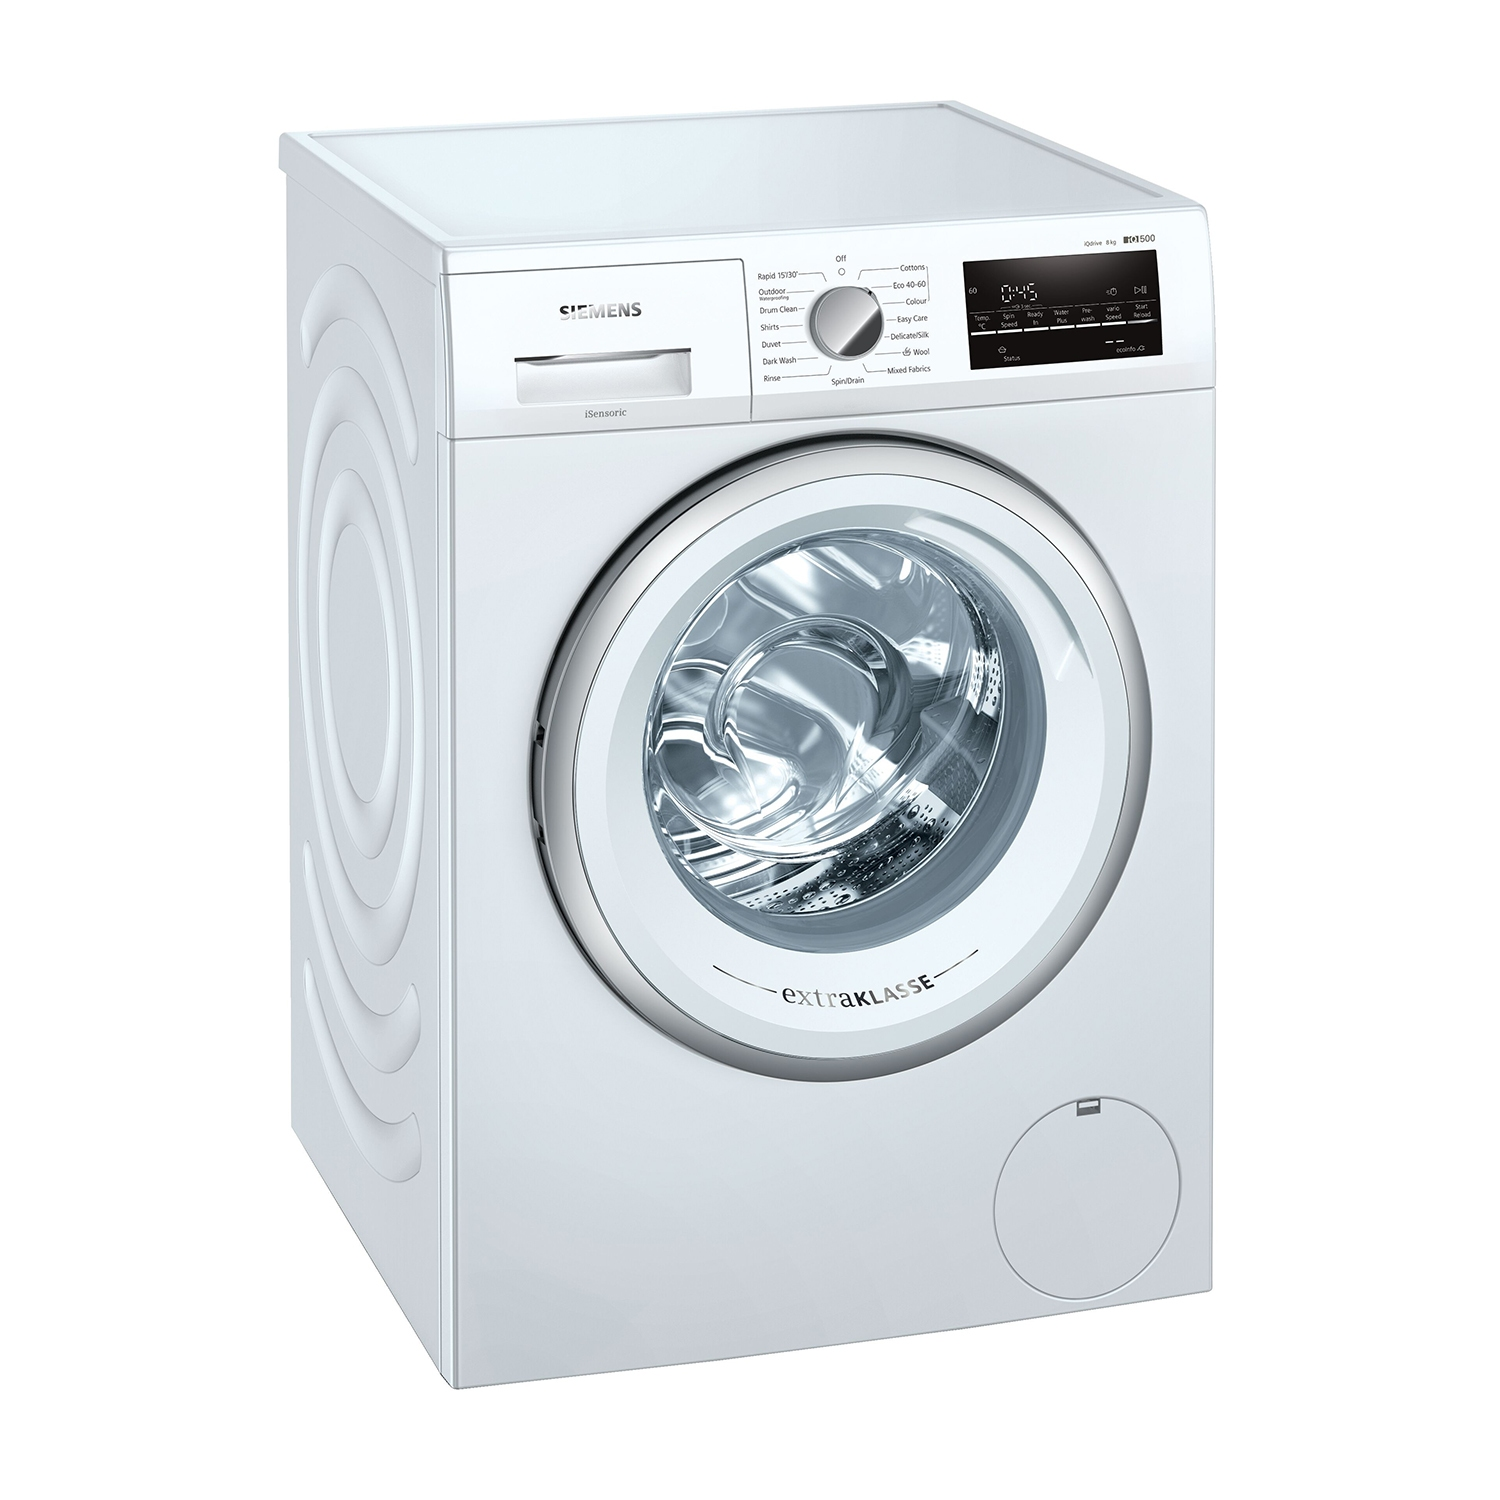 Siemens 8kg 1400 Spin Washing Machine - White - A+++ Rated - 0